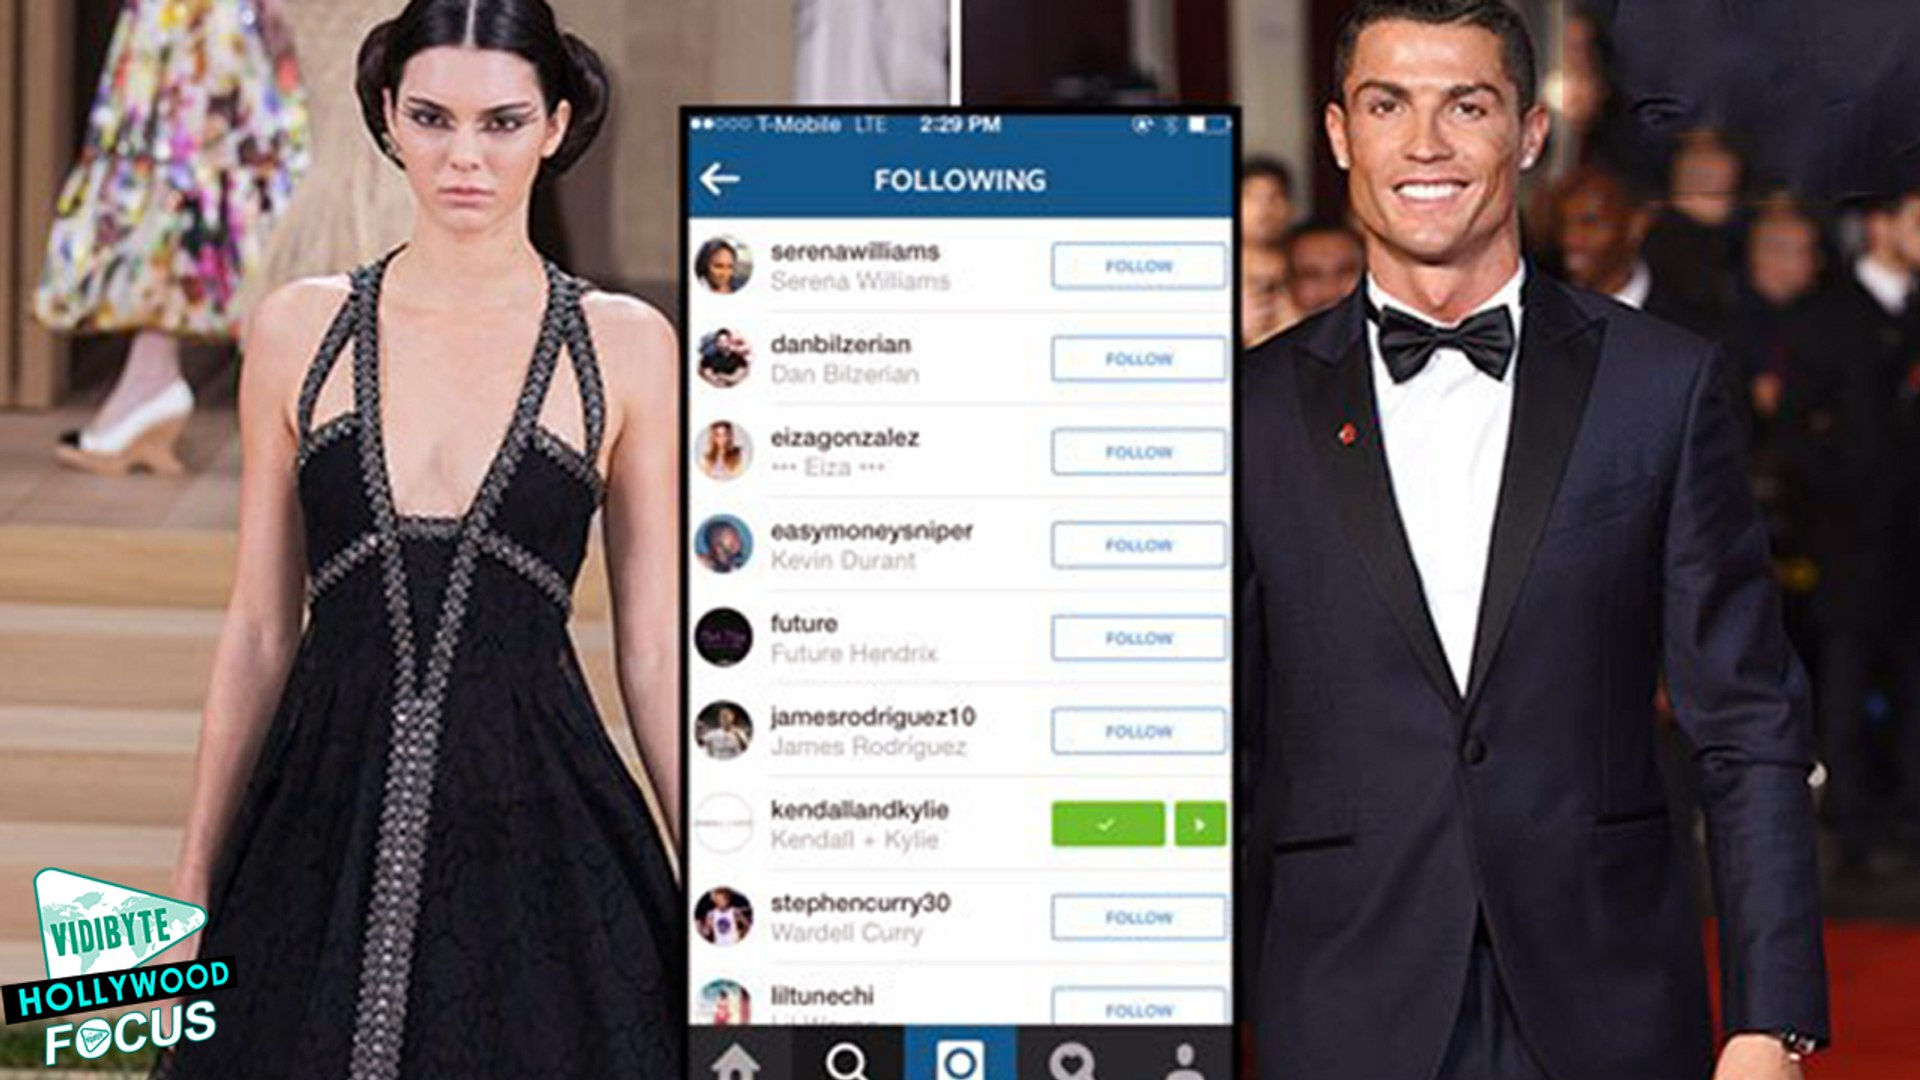 Cristiano Ronaldo Admits He S Interested In Kendall Jenner Relationship Video Dailymotion